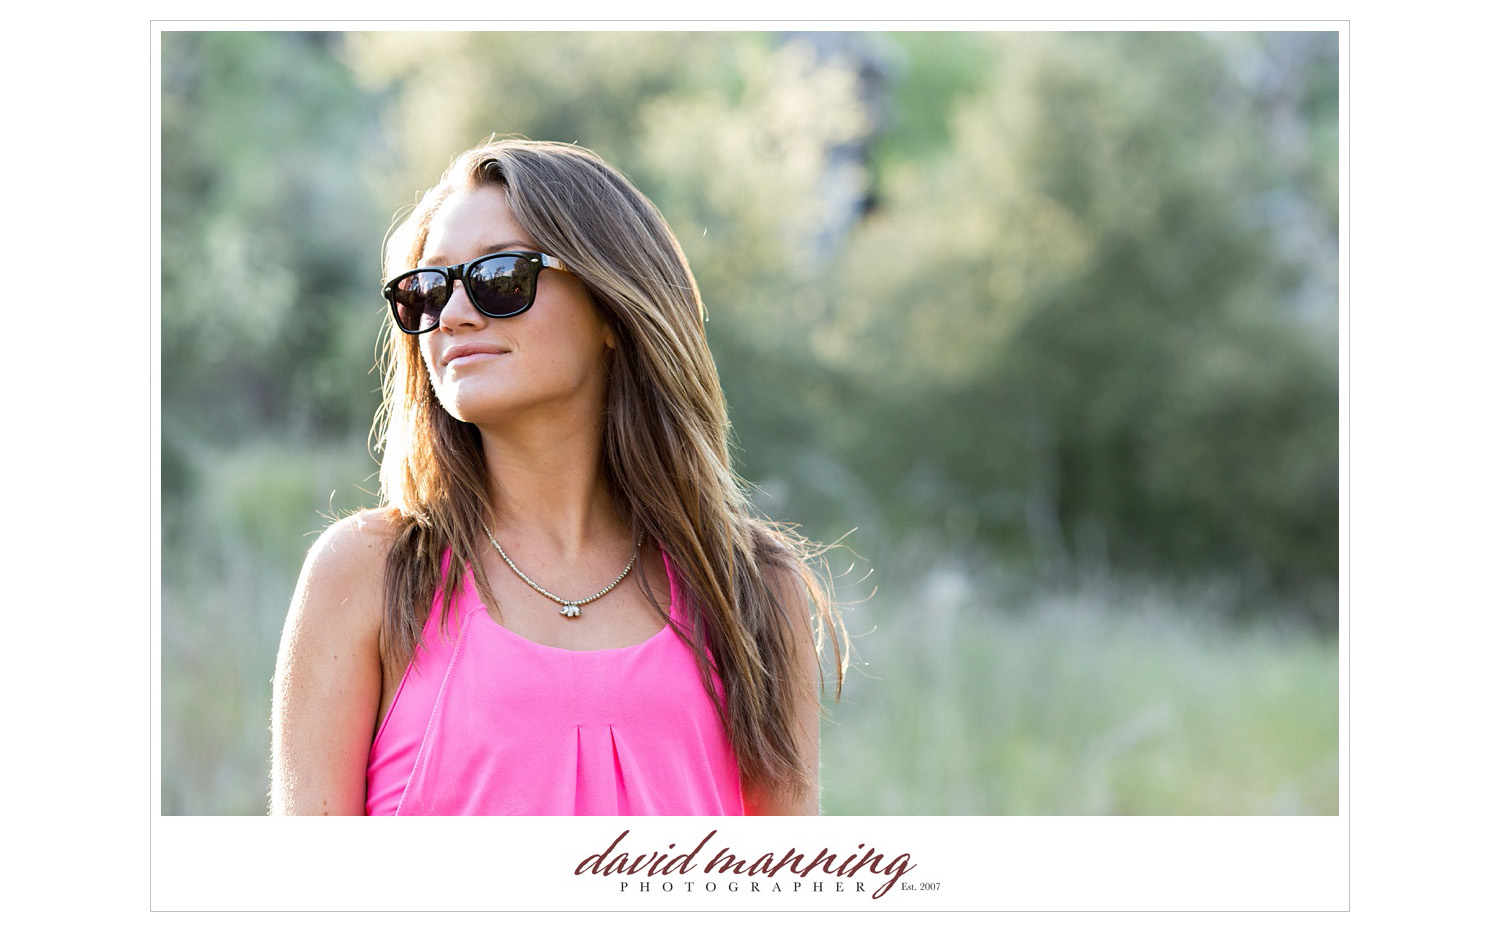 SOLO-Eyewear--Commercial-Editorial-Photos-David-Manning-Photographers-0029.jpg